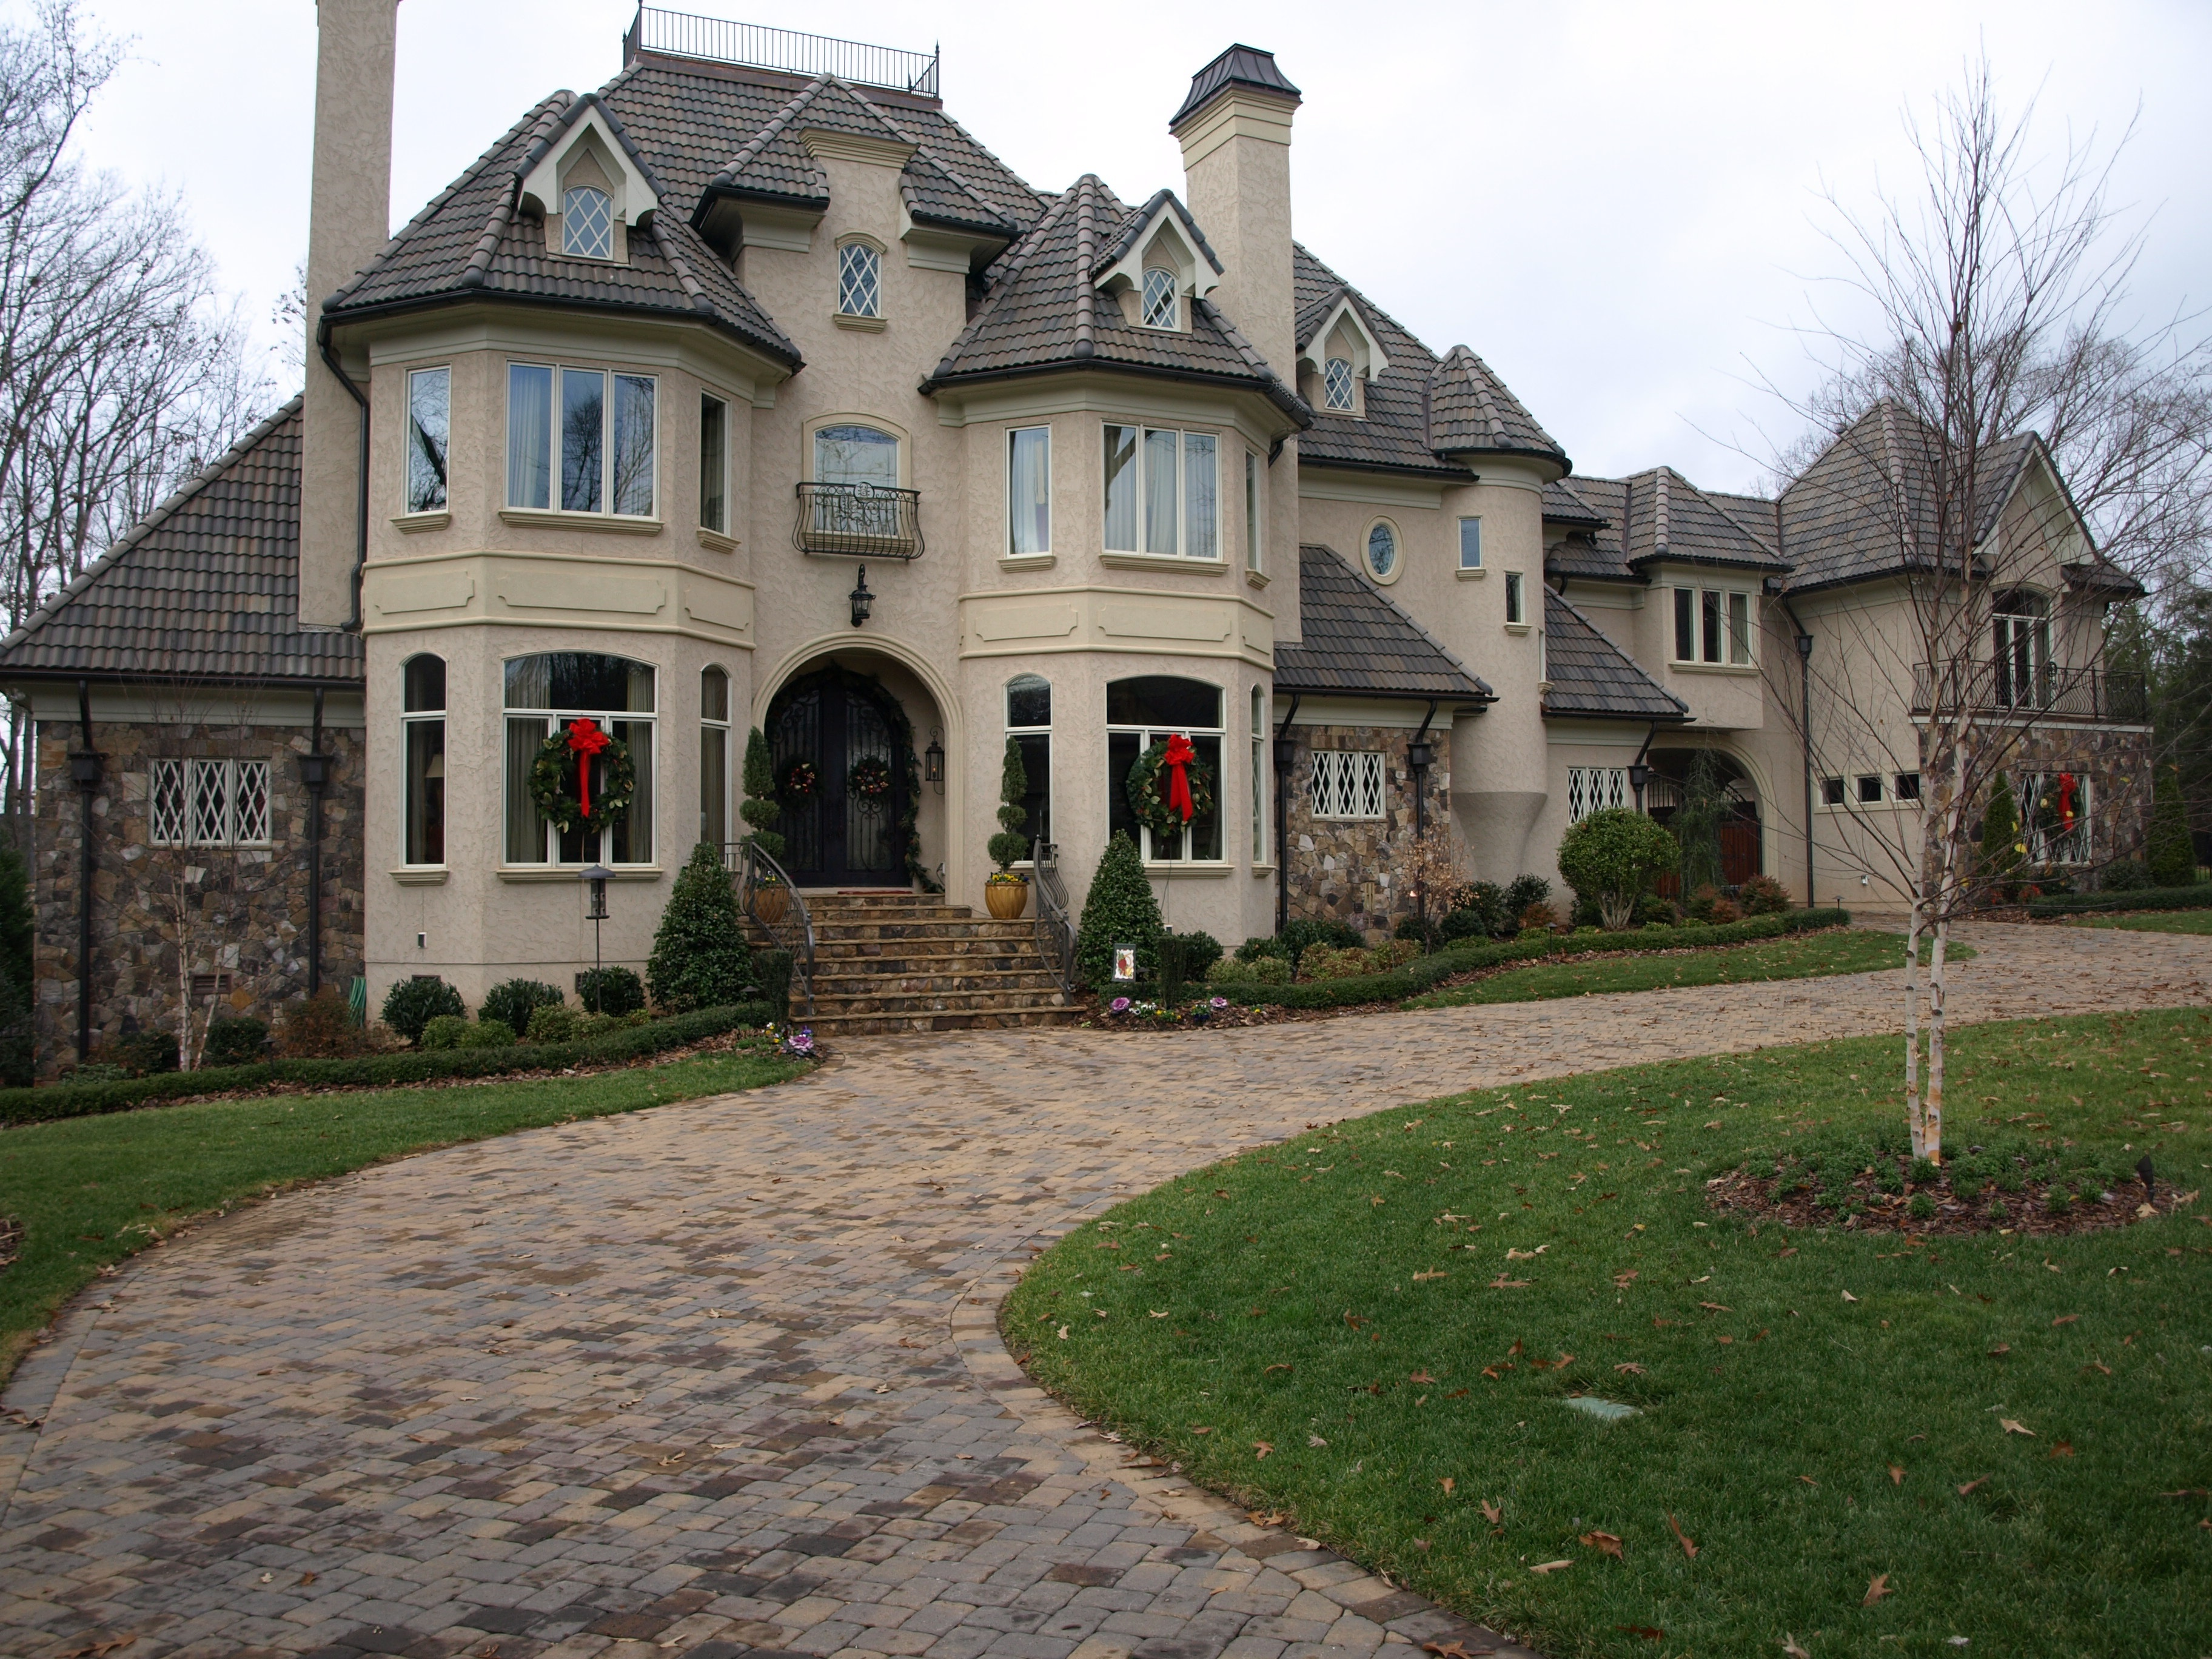 11 genius homes with stone accents house plans 7962 for Stucco homes with stone accents